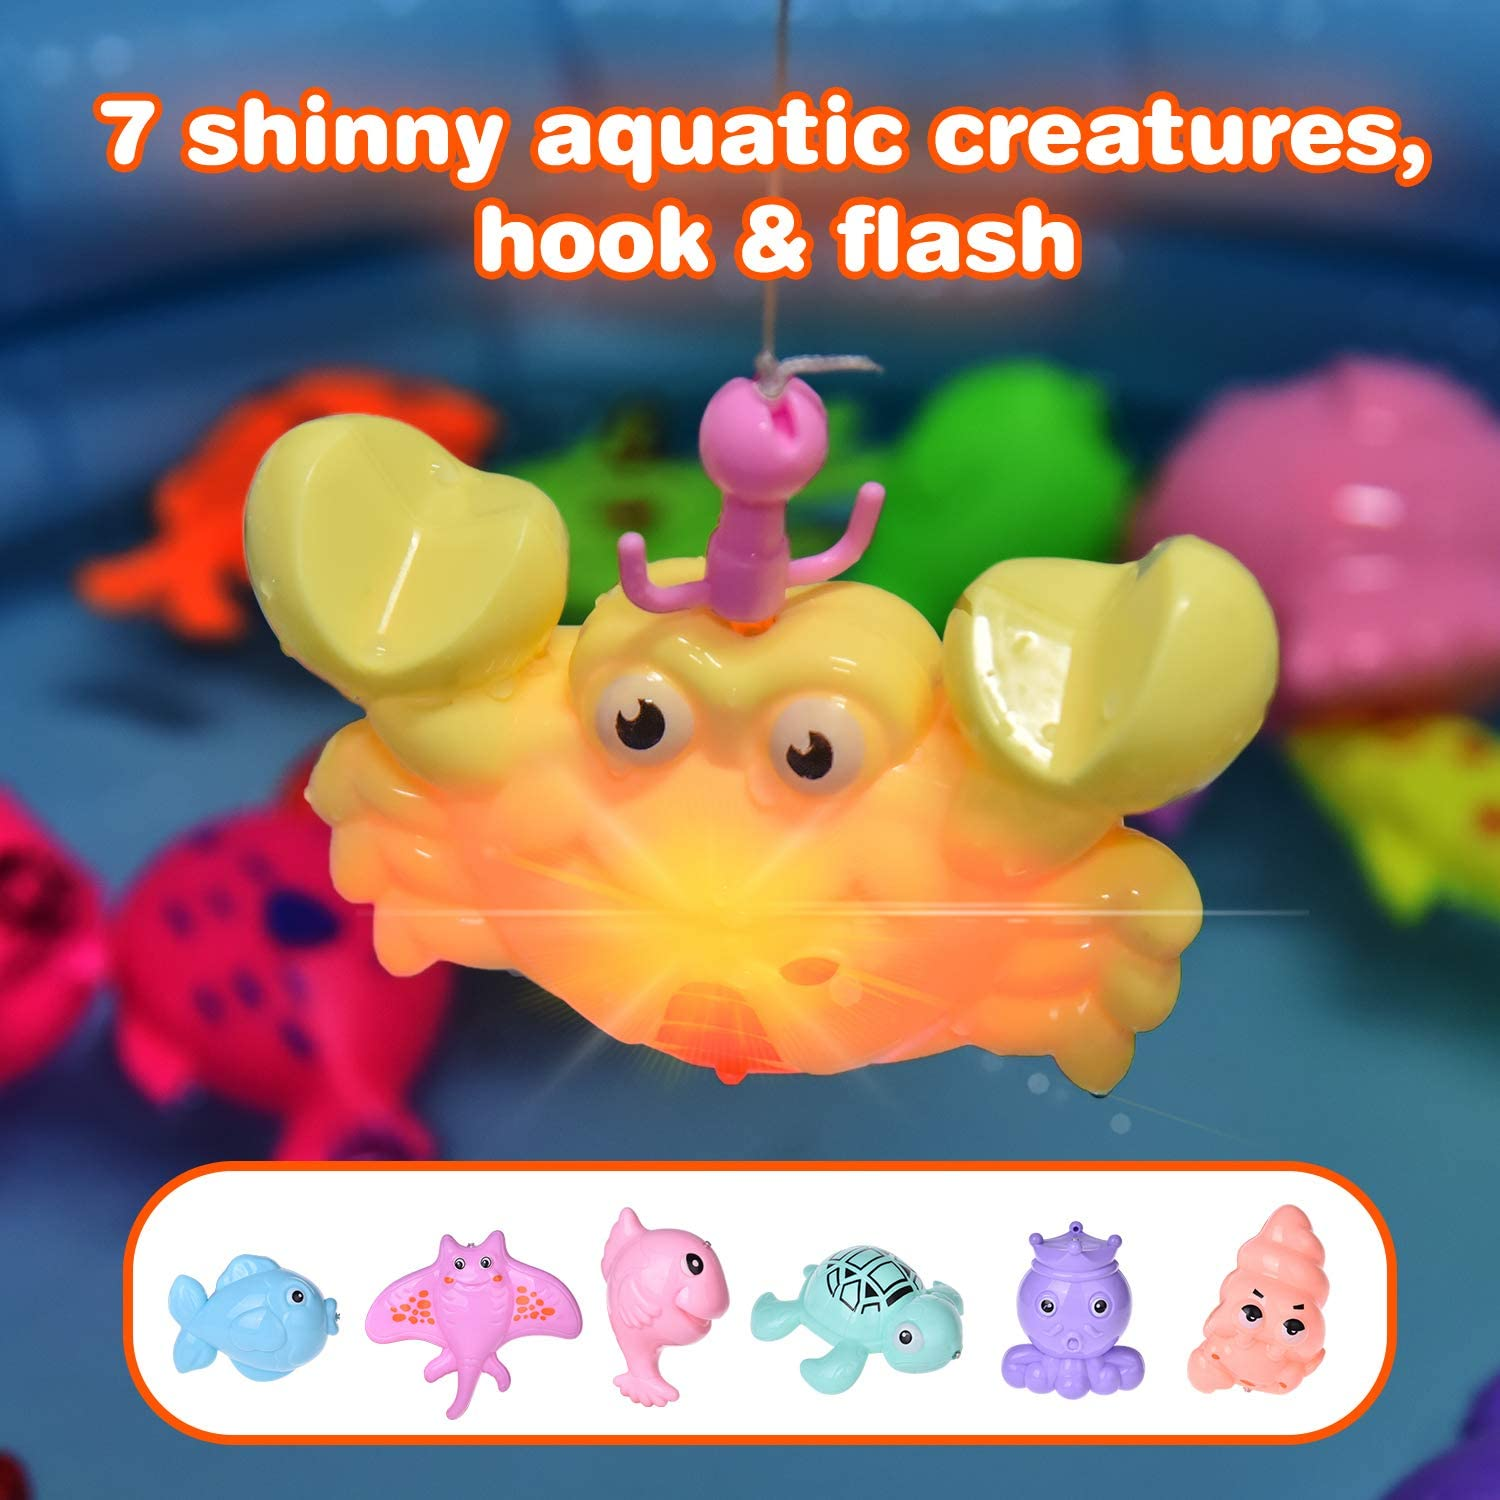 2 Fishing Rodes 29 Fishes and 7 Sea Animals with Light 42PCs Magnetic Fishing Toys with 11 Inch Fishing Pool Toddler Bath Toys Water Toys Fishing Game for Kids